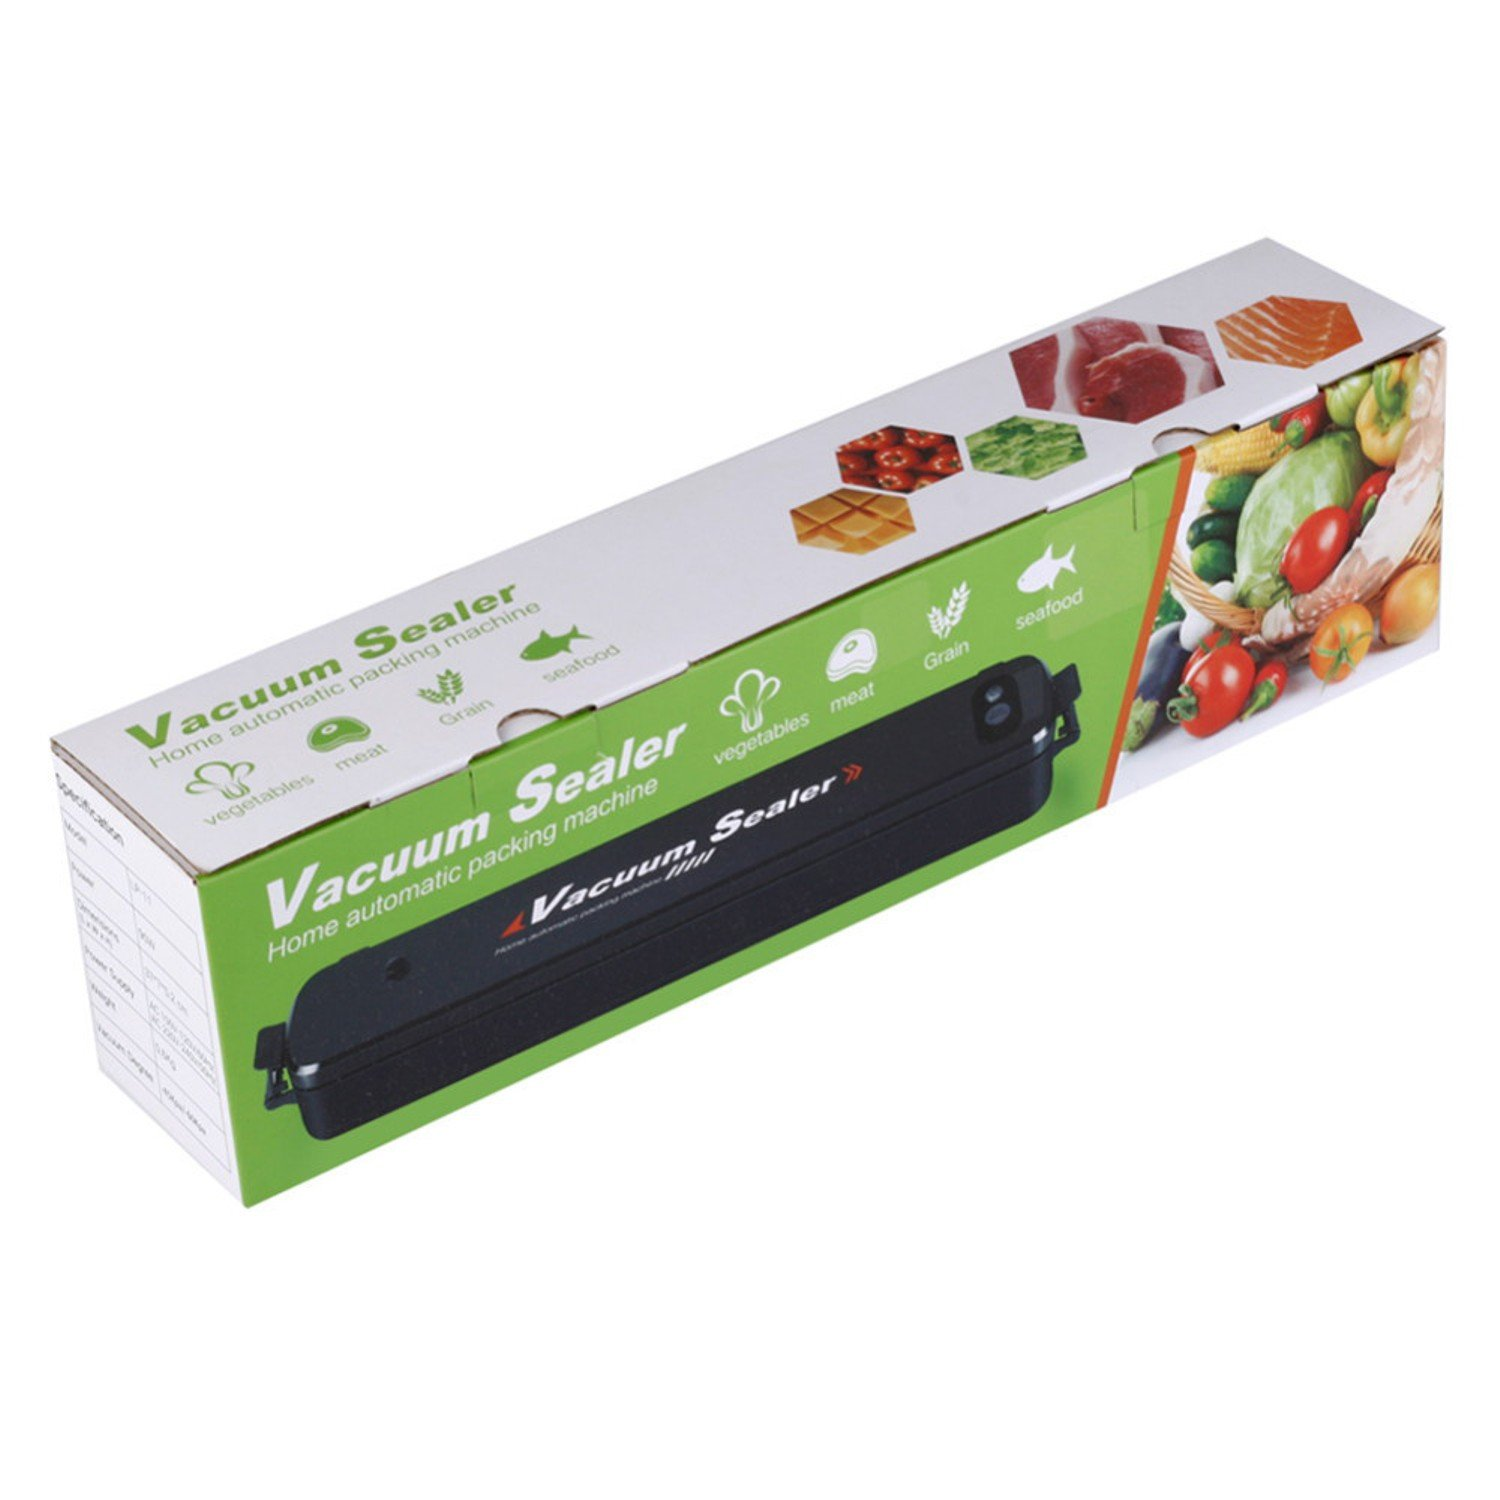 Automatical 90W Household Mini Vacuum Sealer Food Preservation Machine + 15 Sealing Bags Kitchen Tool by Gogil (Image #6)